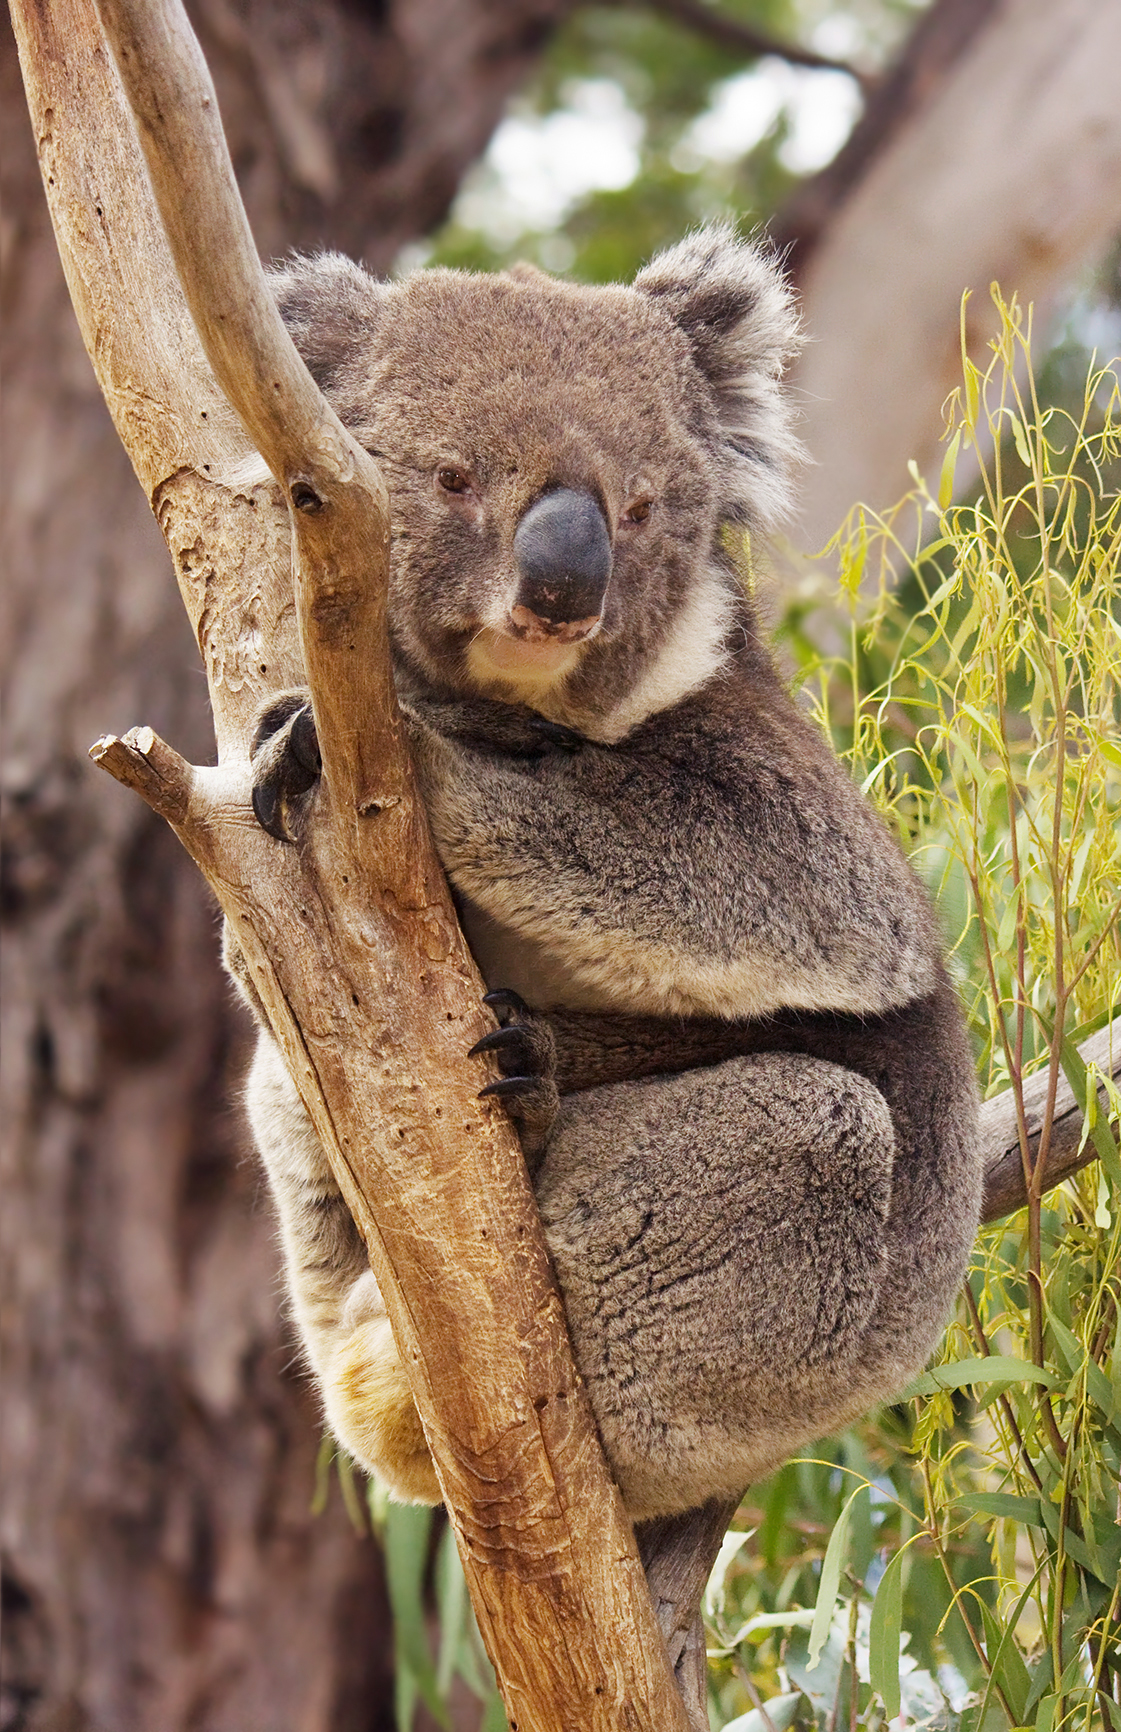 koala koala resting in tree between branch and stem